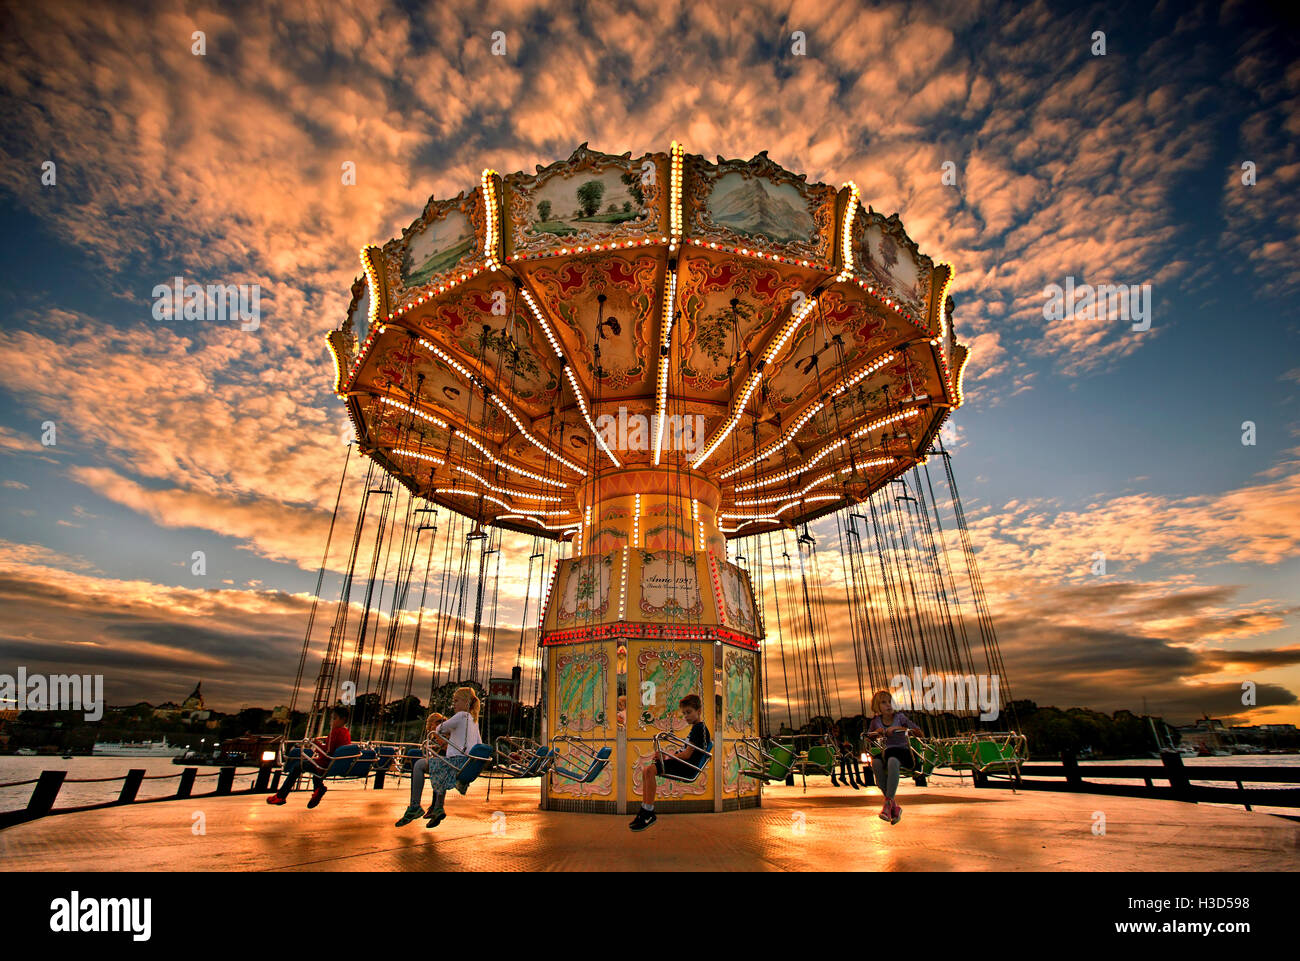 Tivoli Grona Lund (Luna Park) around sunset, Djurgarden, Stockholm, Sweden - Stock Image